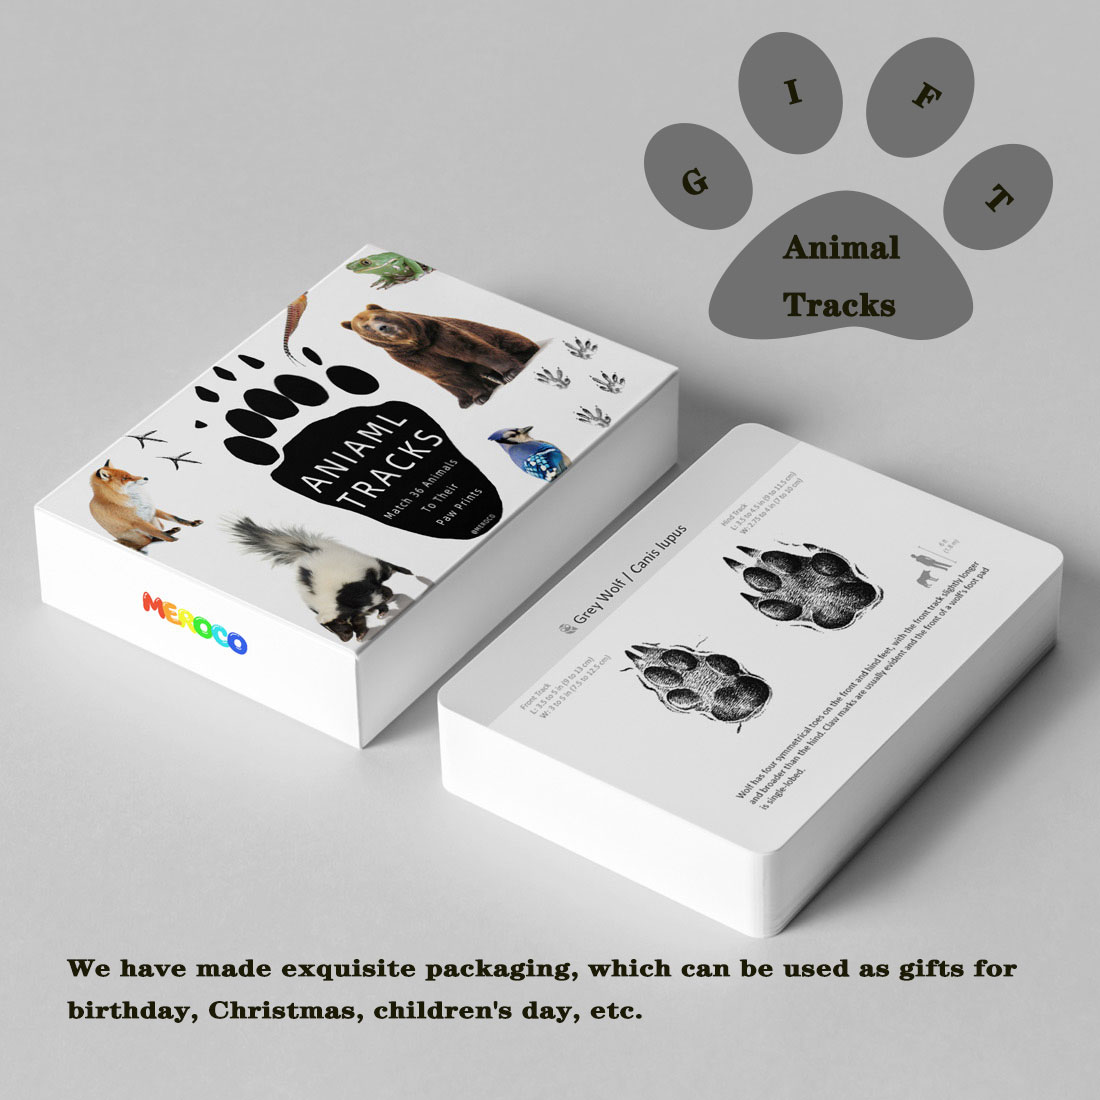 Montessori Material Animals  Footprints Flash Cards Montessori English Learn Card Early Educational Toy Memory Game for Children 2